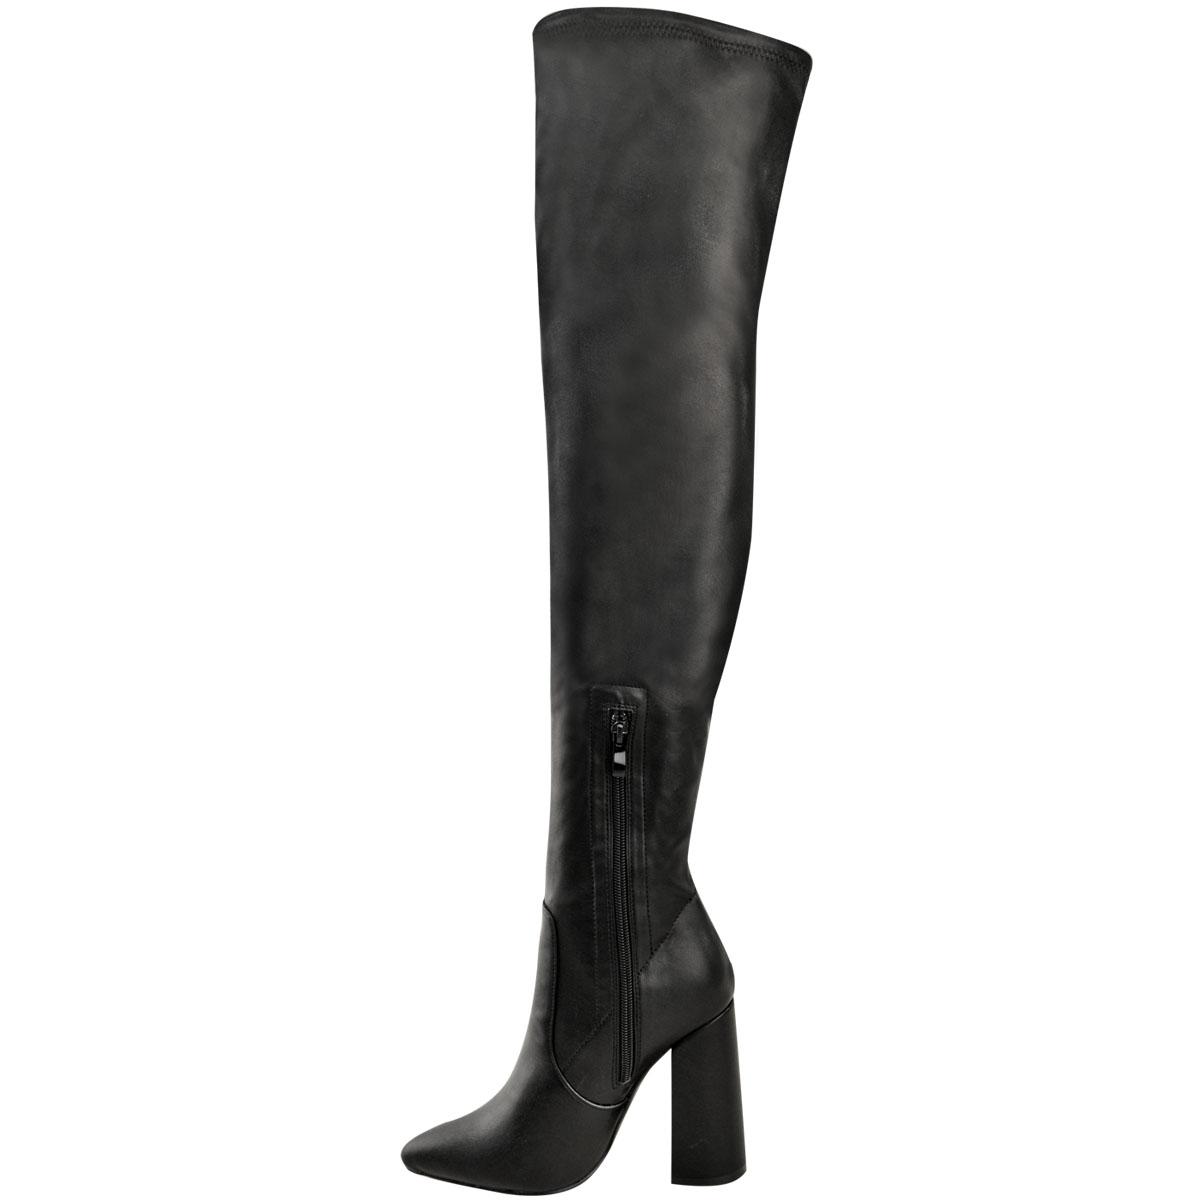 Womens-Ladies-Thigh-High-Boots-Lycra-Over-The-Knee-Pointy-Block-High-Heels-Size Indexbild 15